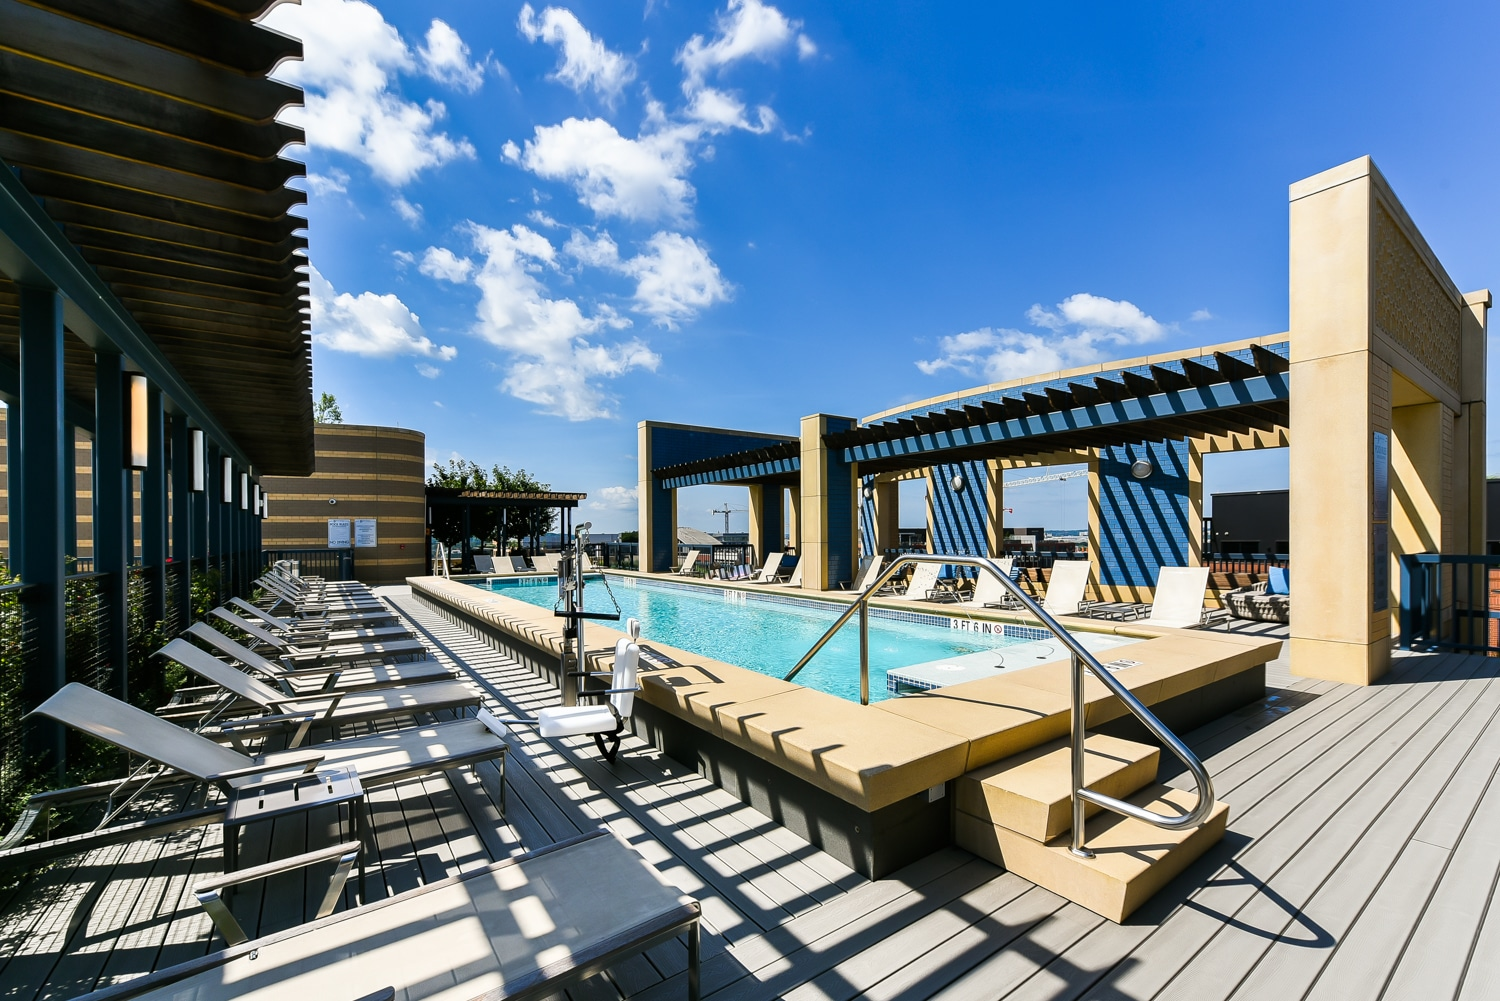 The-Collective-Pool-Outdoor-Rooftop-Views